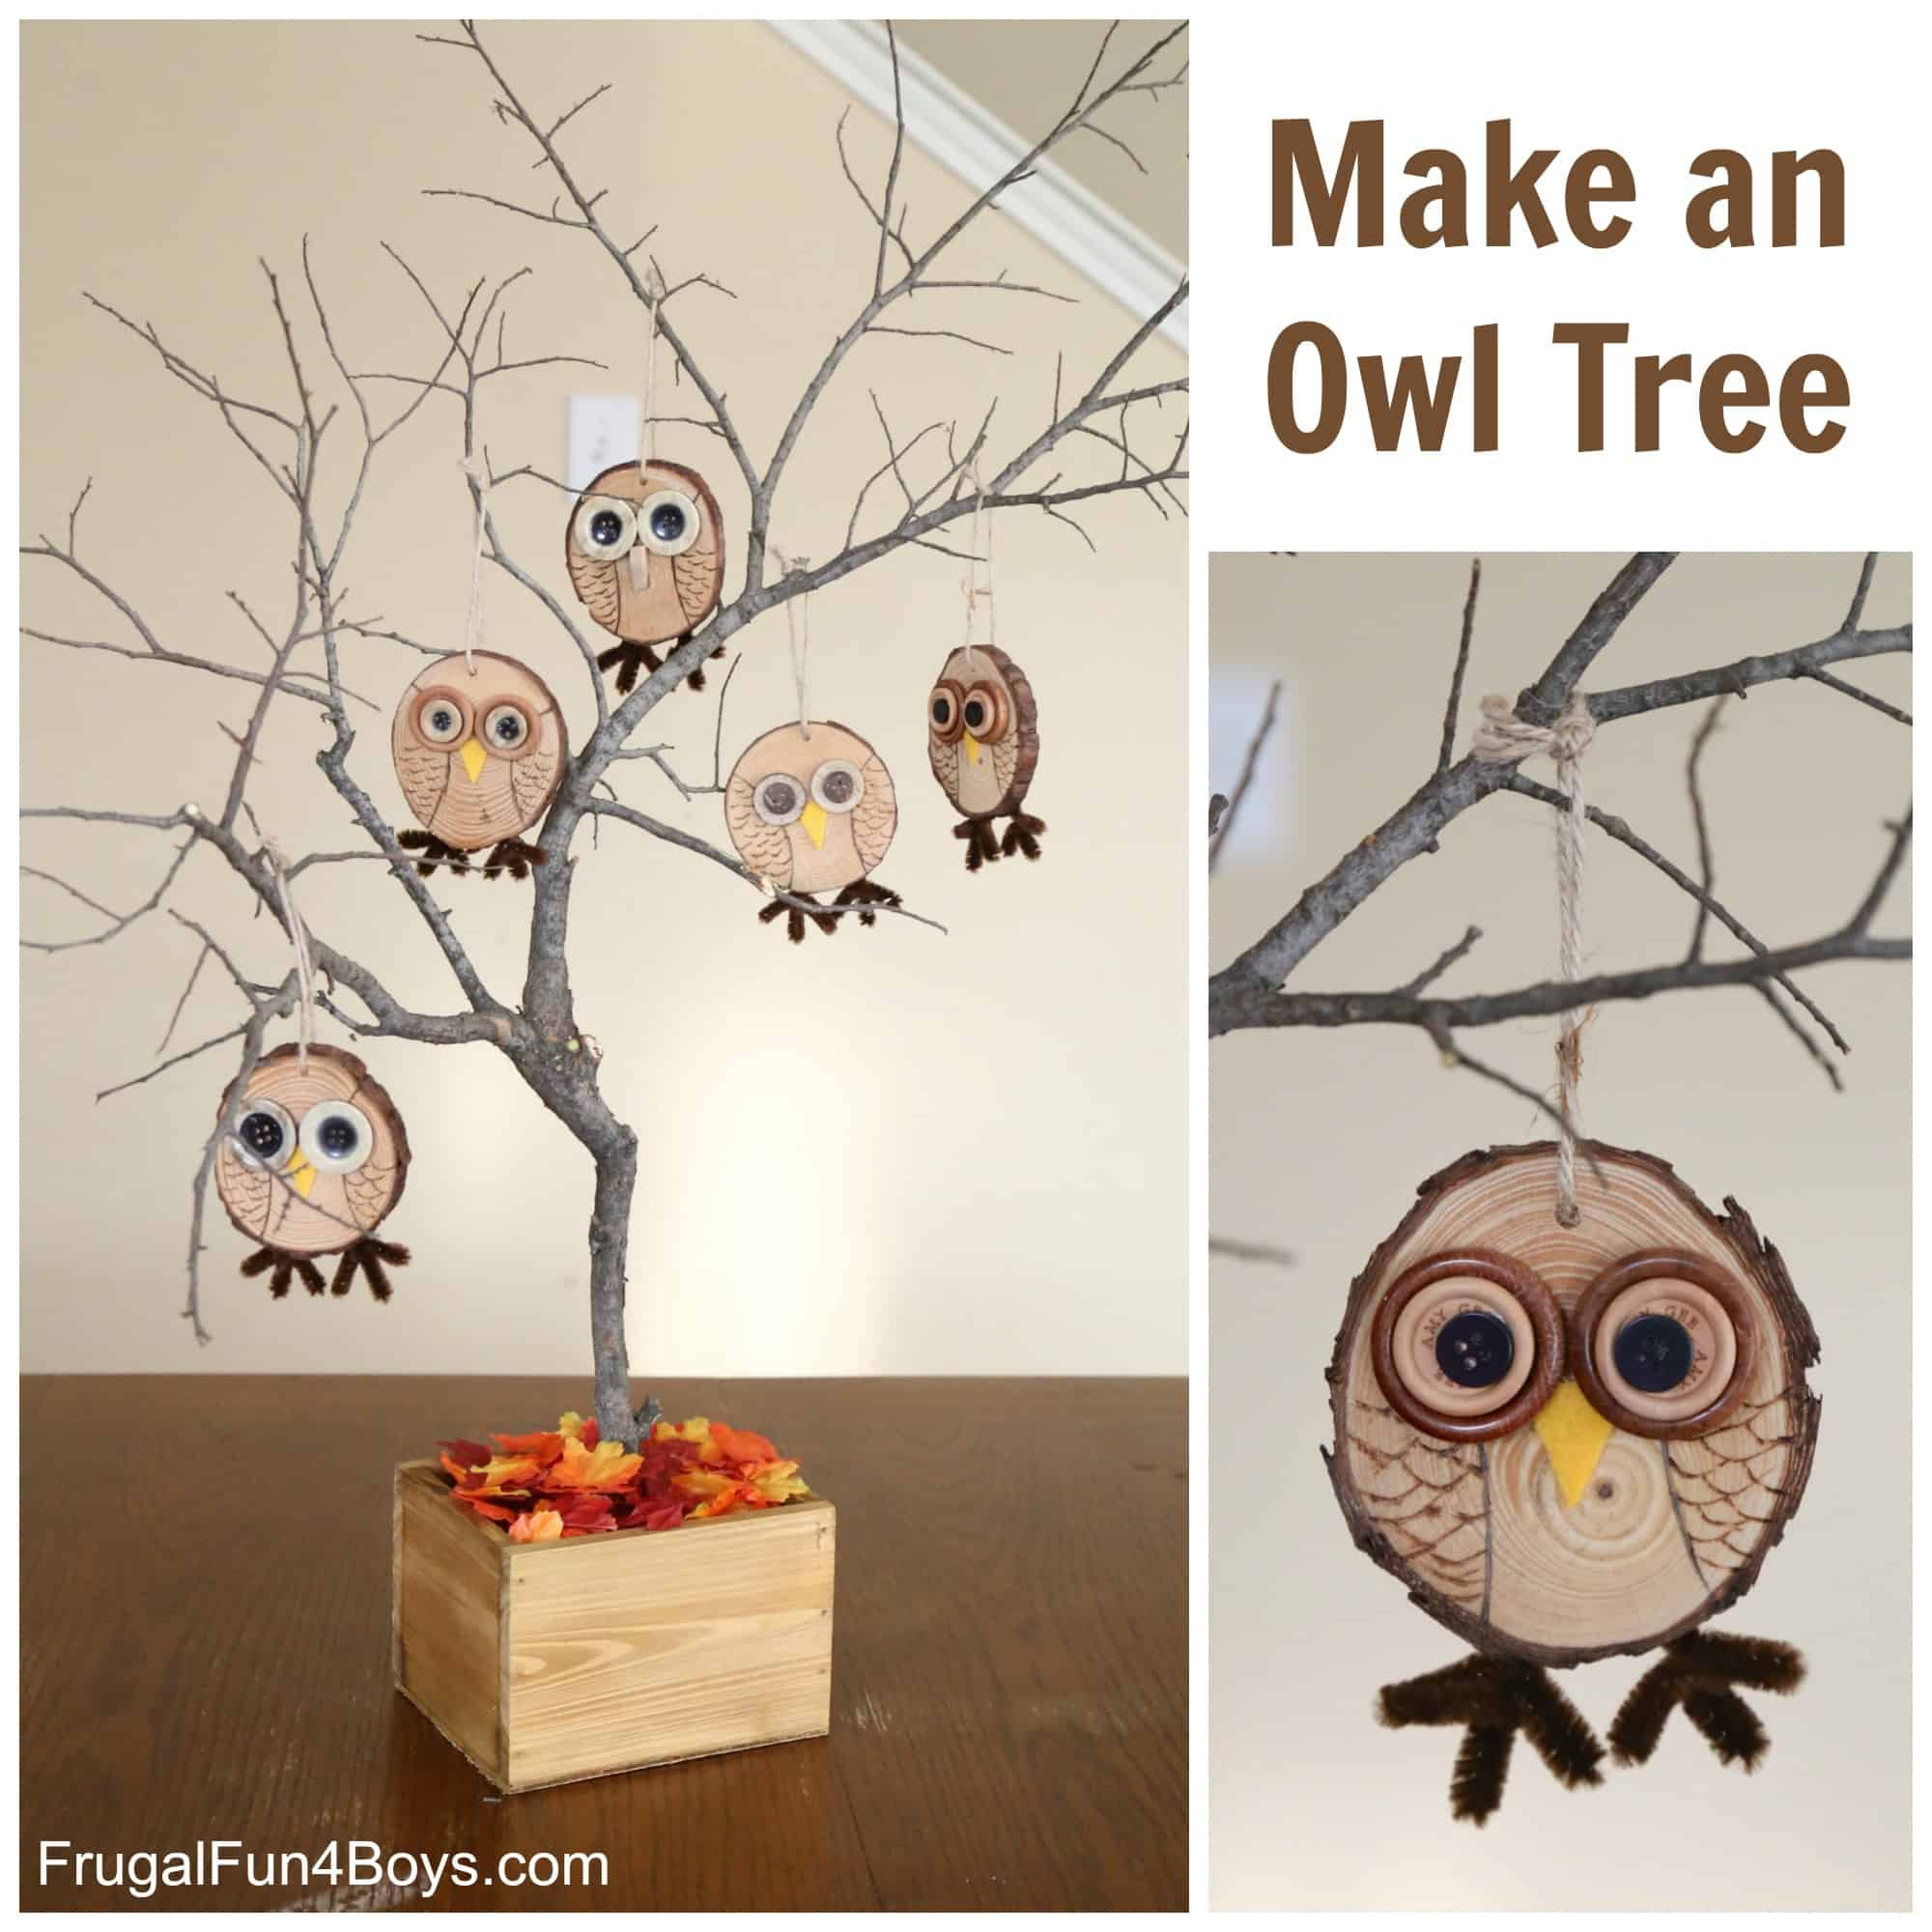 Cute wooden owl tree